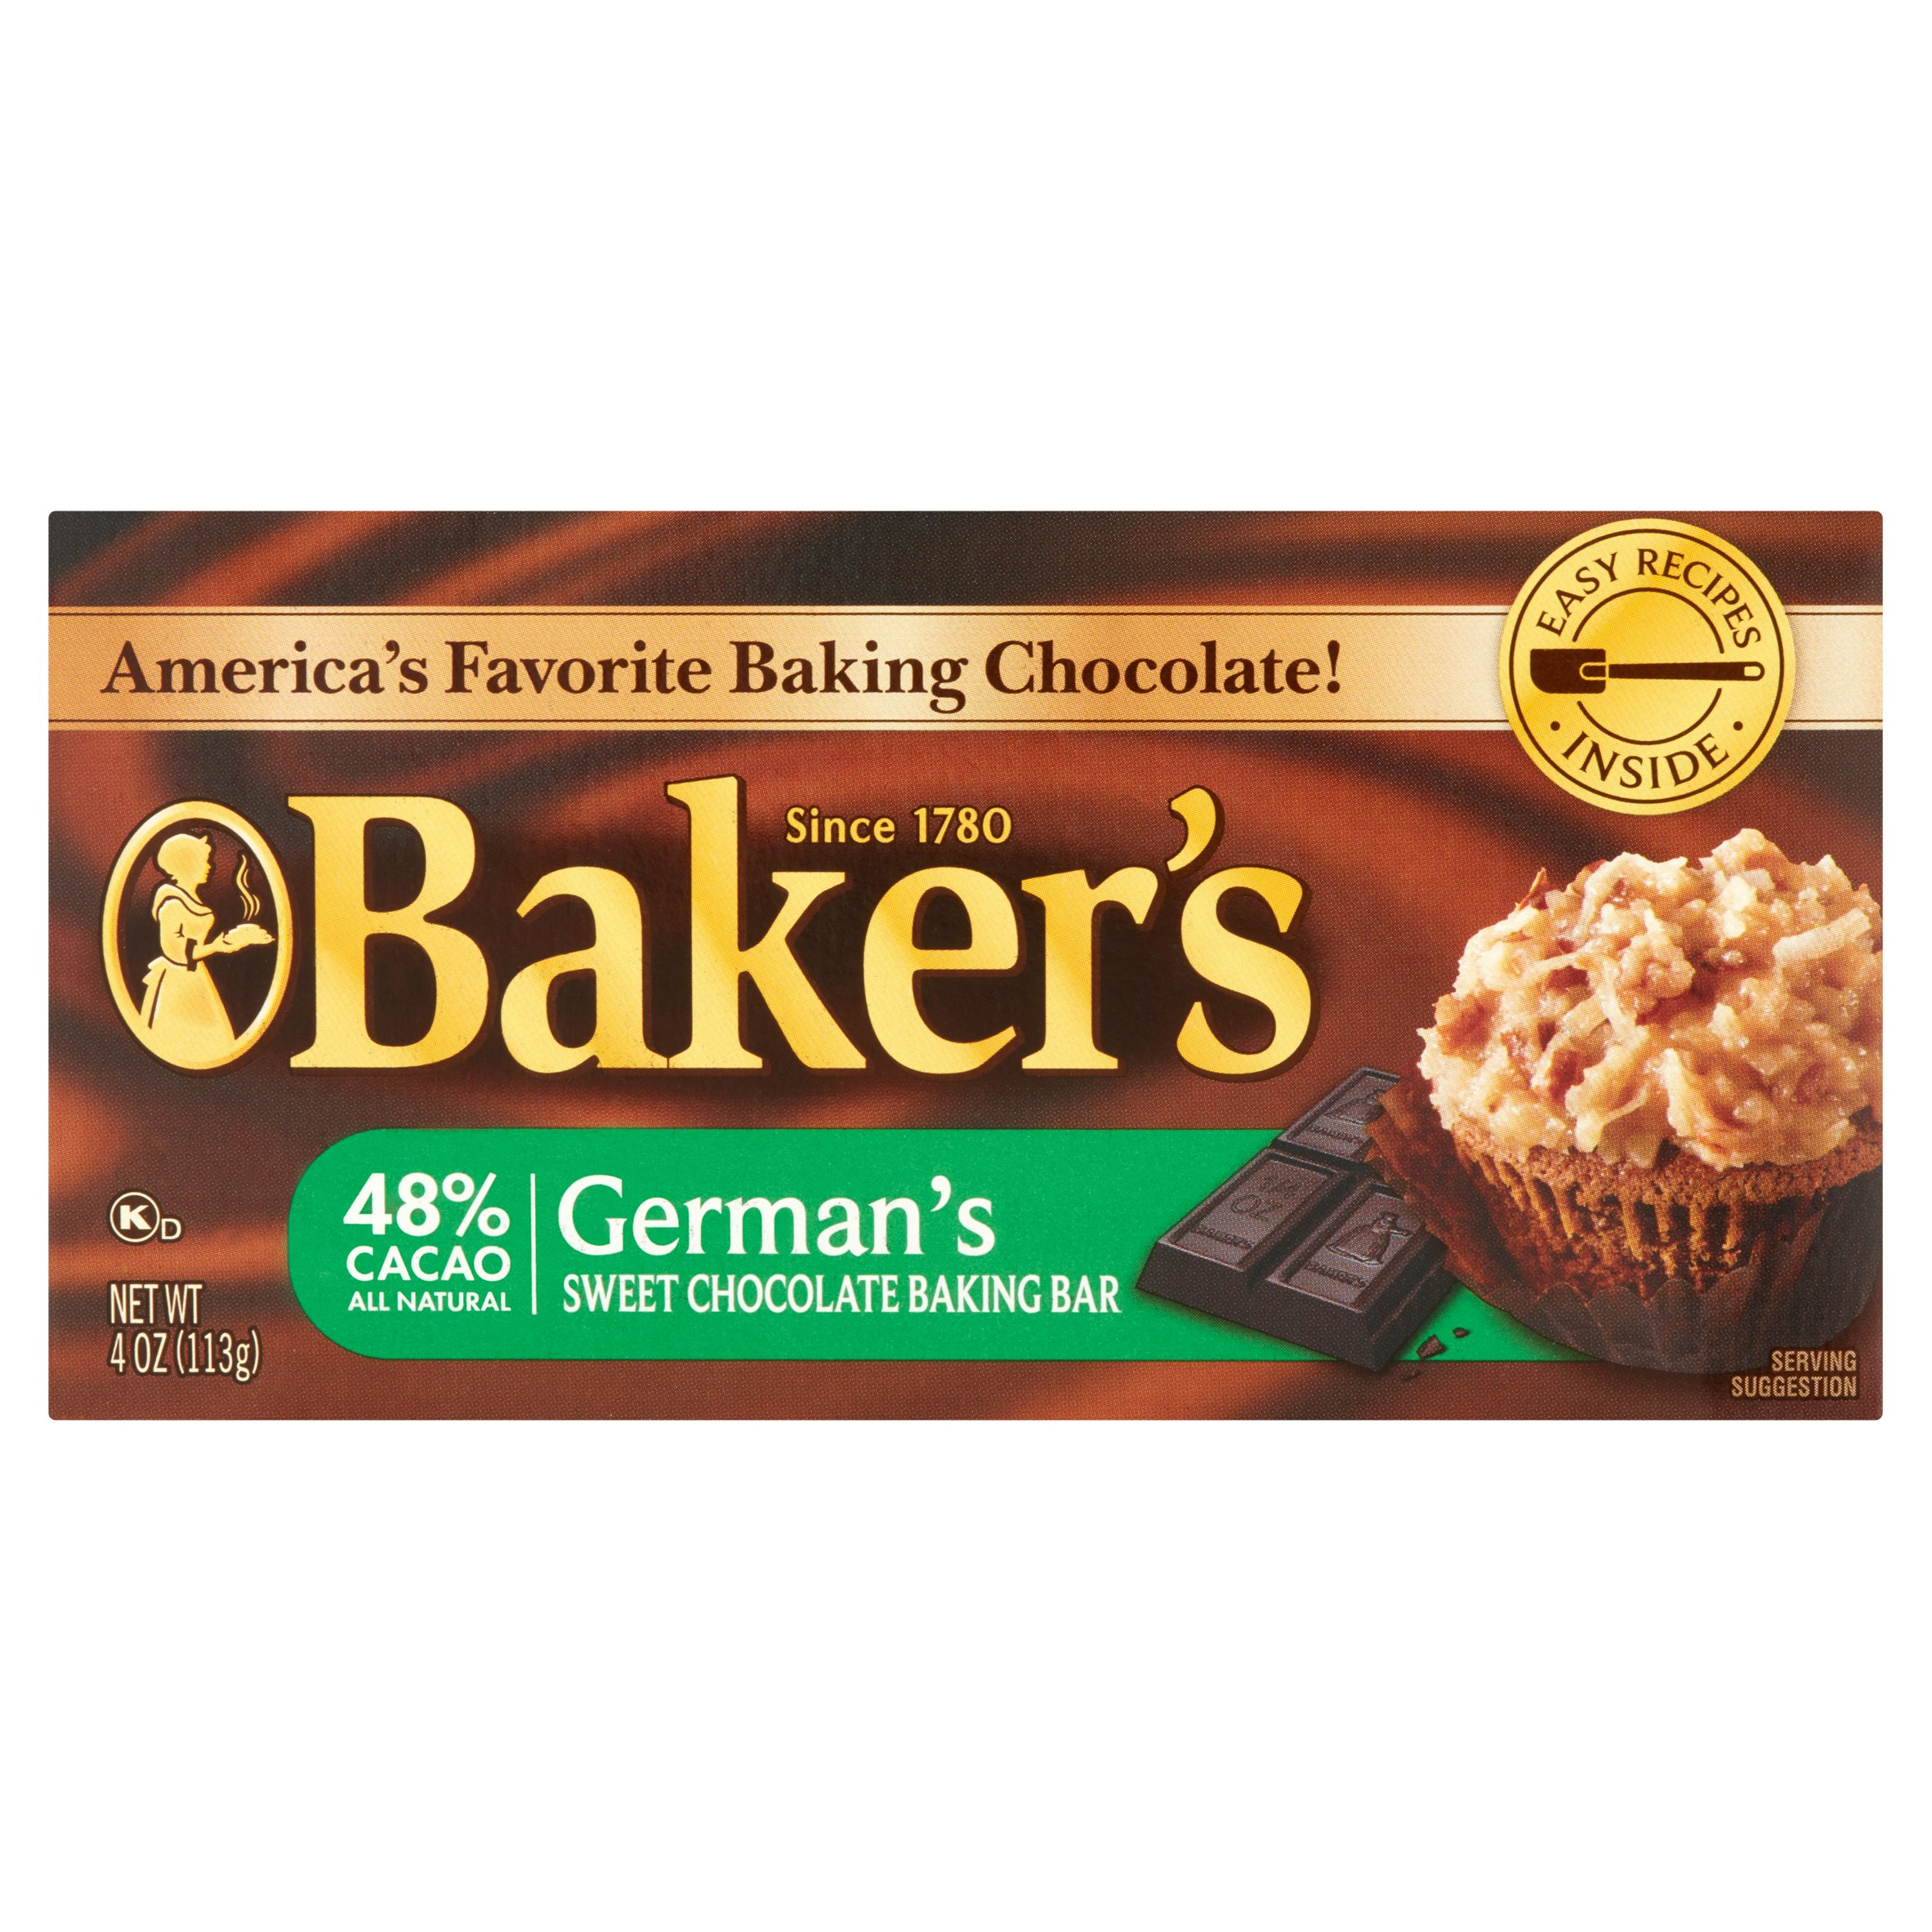 Baker's Baking Chocolate Bar 48% Cacao German's Sweet, 4 Oz by Kraft Foods Group, Inc.